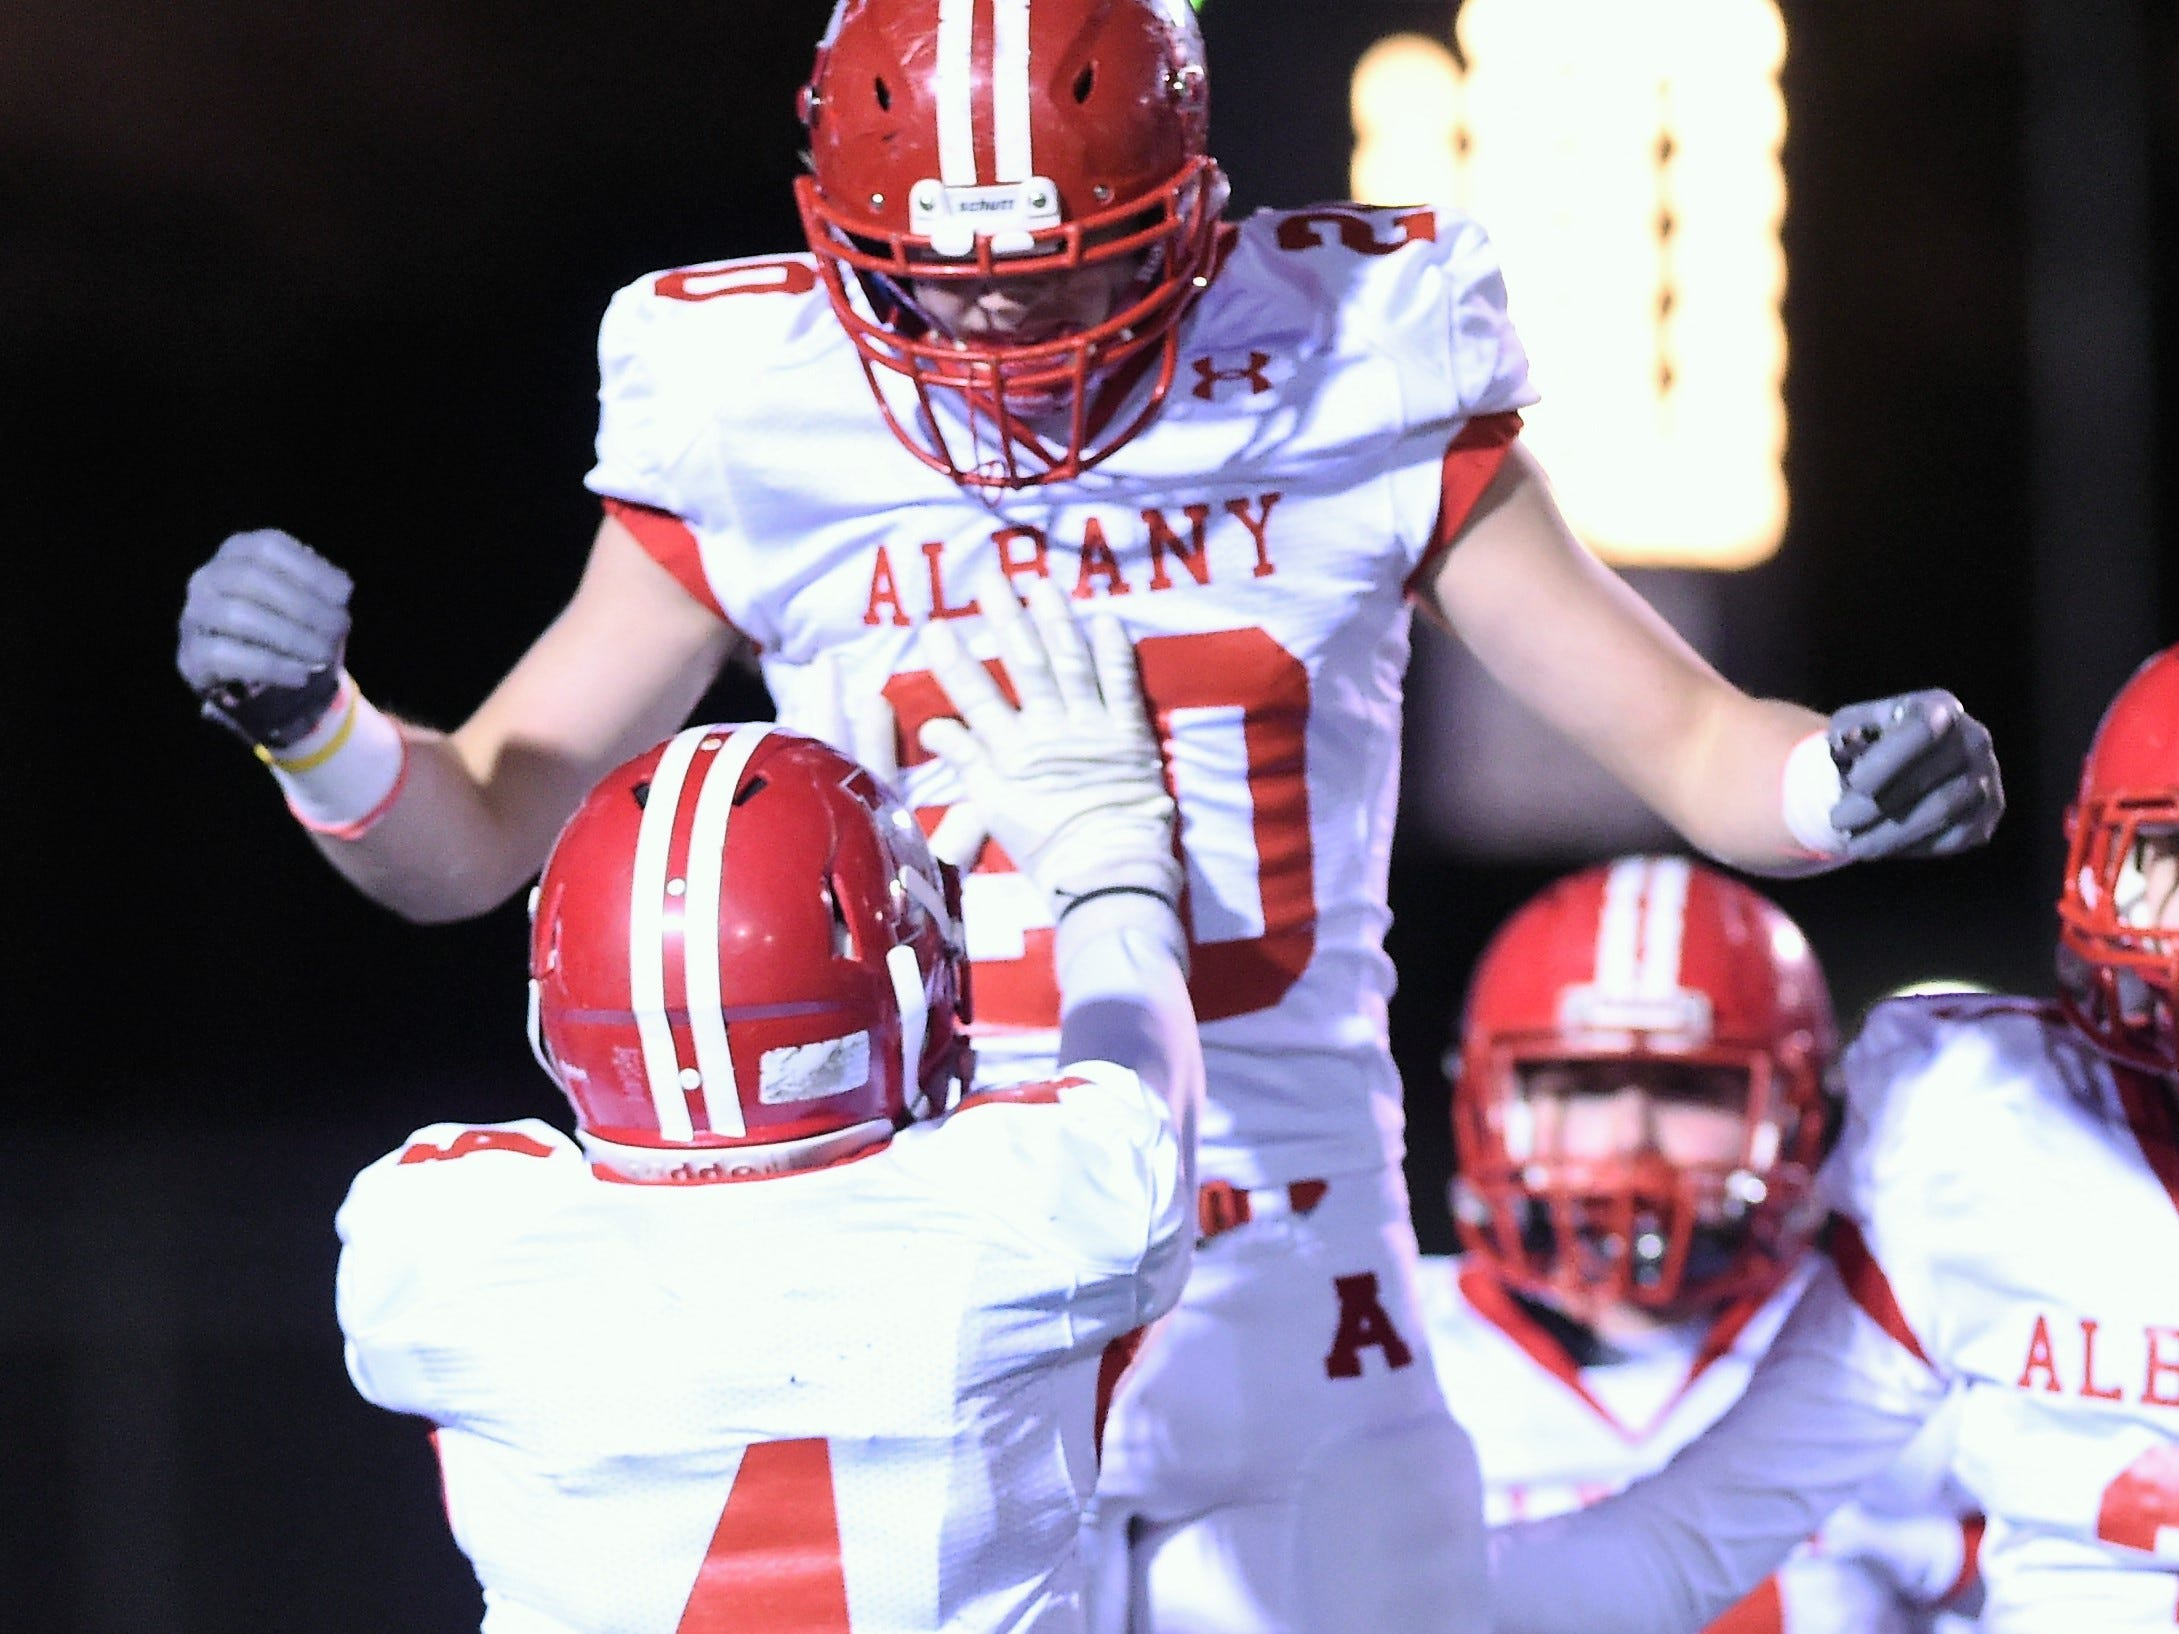 Albany's Ben West (4) picks up Ryan Hill (20) after a defensive touchdown against Gruver in the Class 2A Division II state semifinal at Sherwood Memorial Bulldog Stadium in Plainview on Thursday, Dec. 13, 2018.